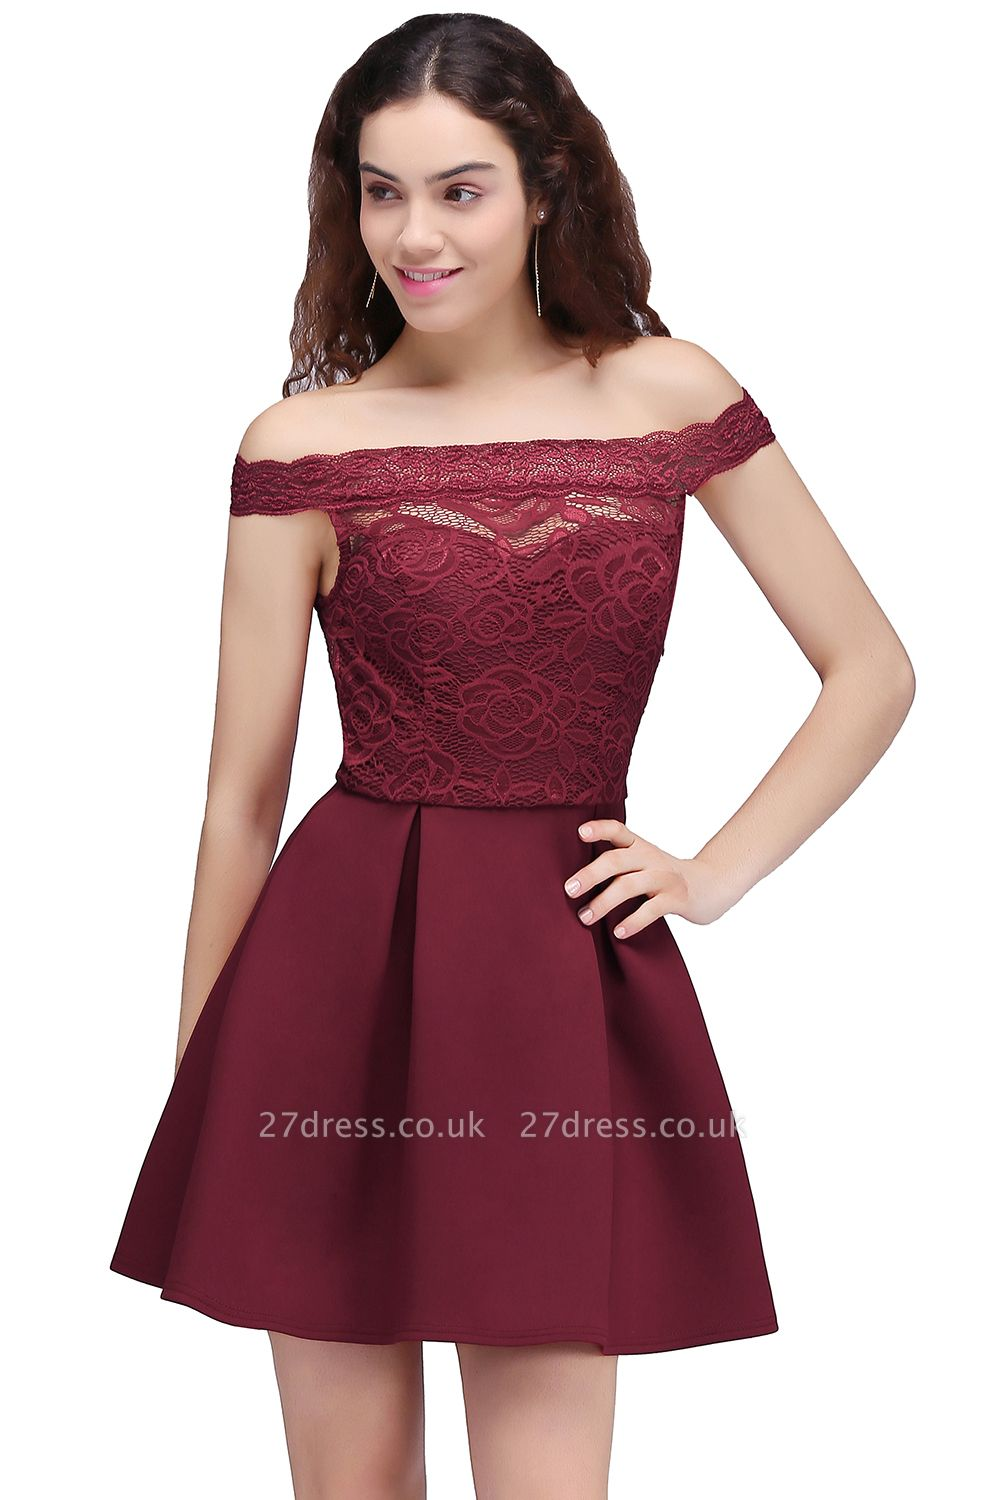 Burgundy Lace A-Line Short Off-the-Shoulder Homecoming Dress UKes UK